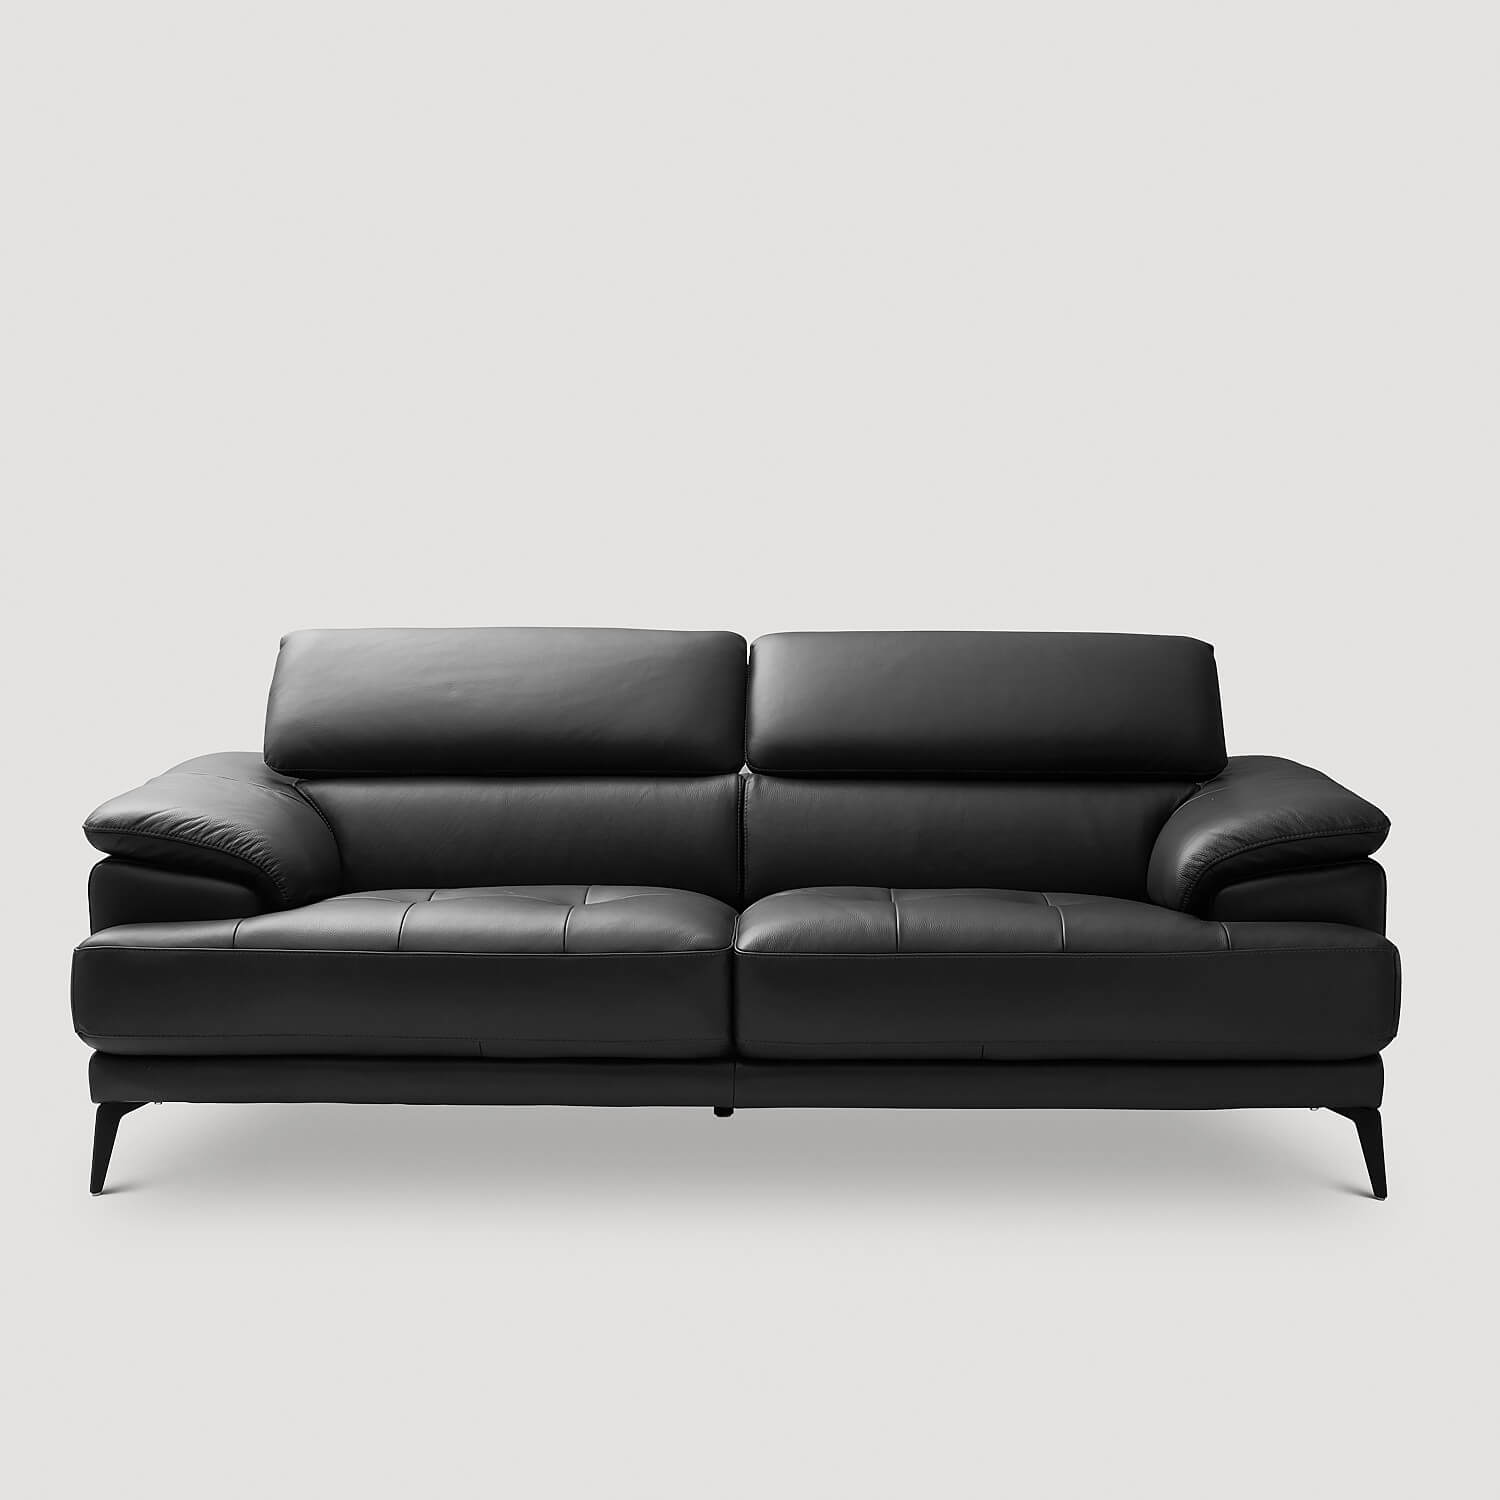 Prospect Leather 3 Seater